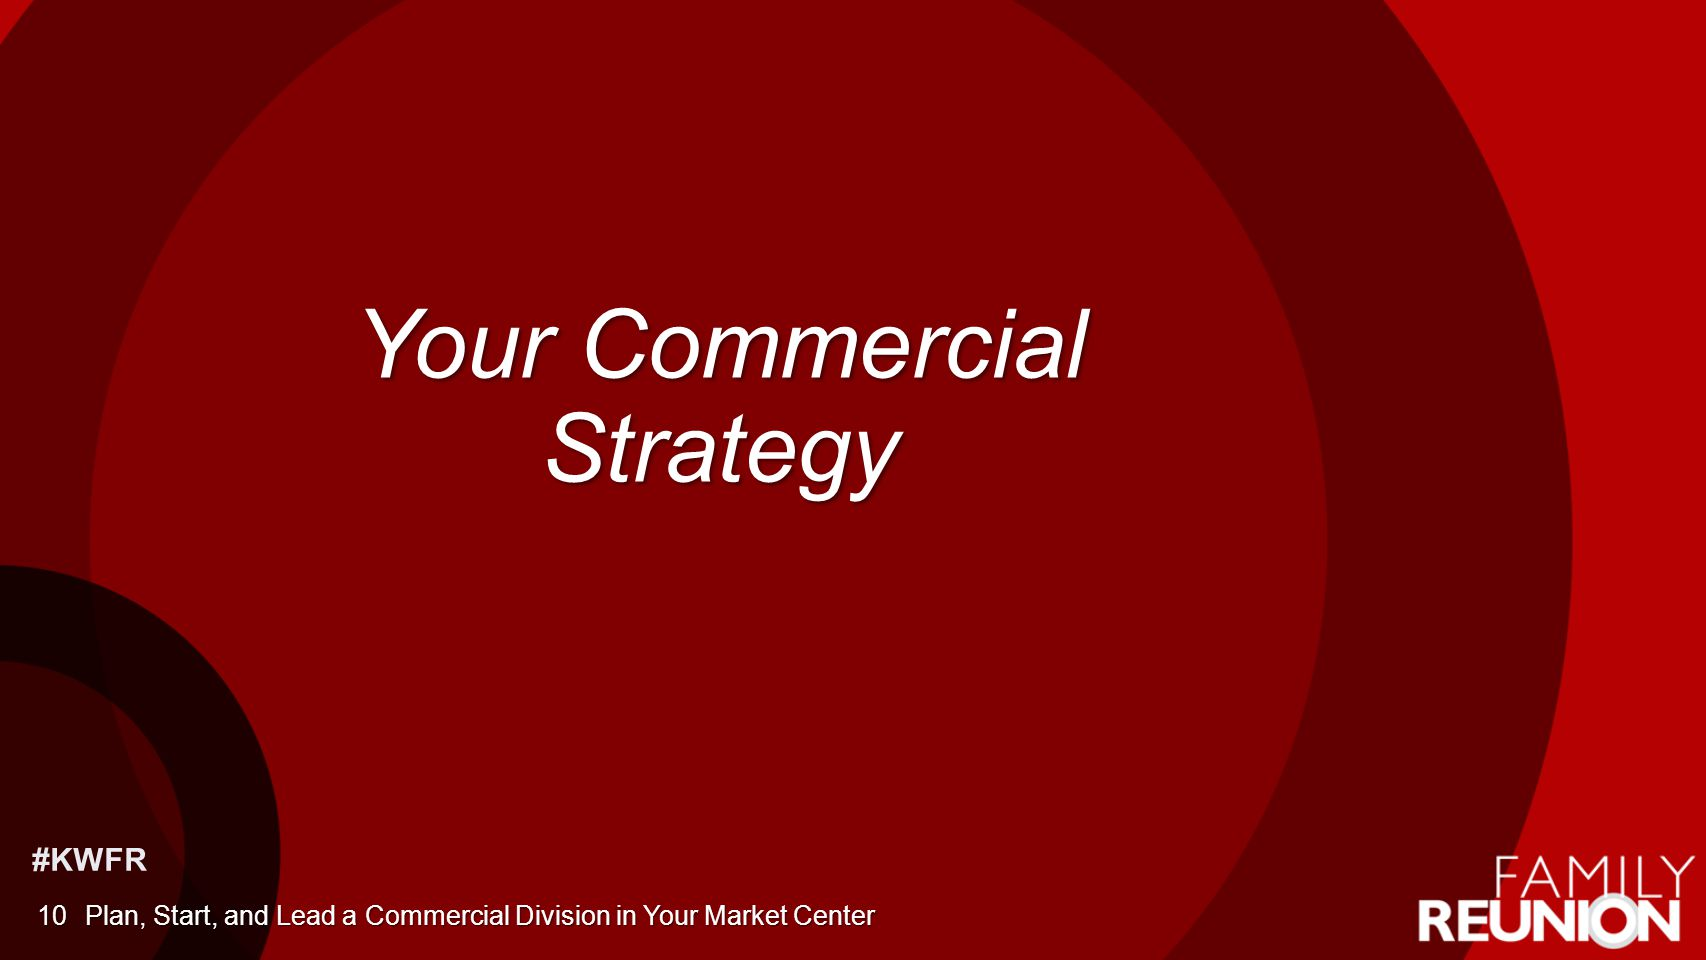 #KWFR Your Commercial Strategy Plan, Start, and Lead a Commercial Division in Your Market Center10